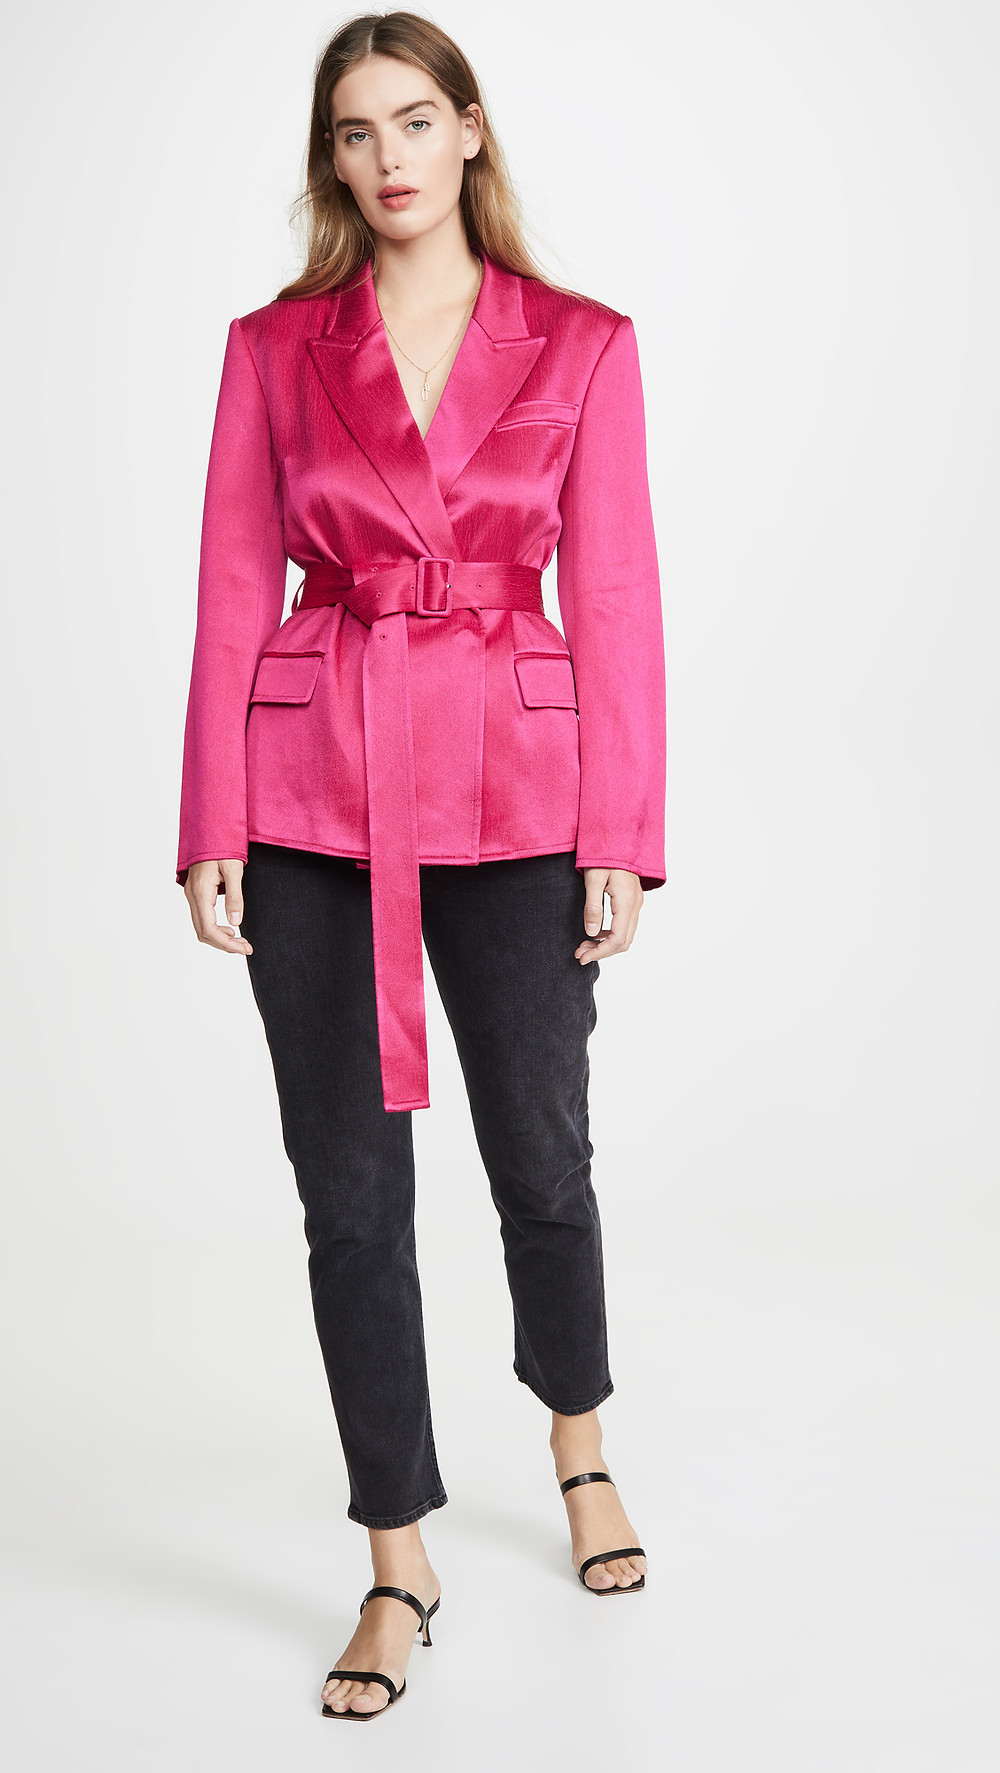 Adeam Belted Tailored Jacket with Padded Shoulders $1,795